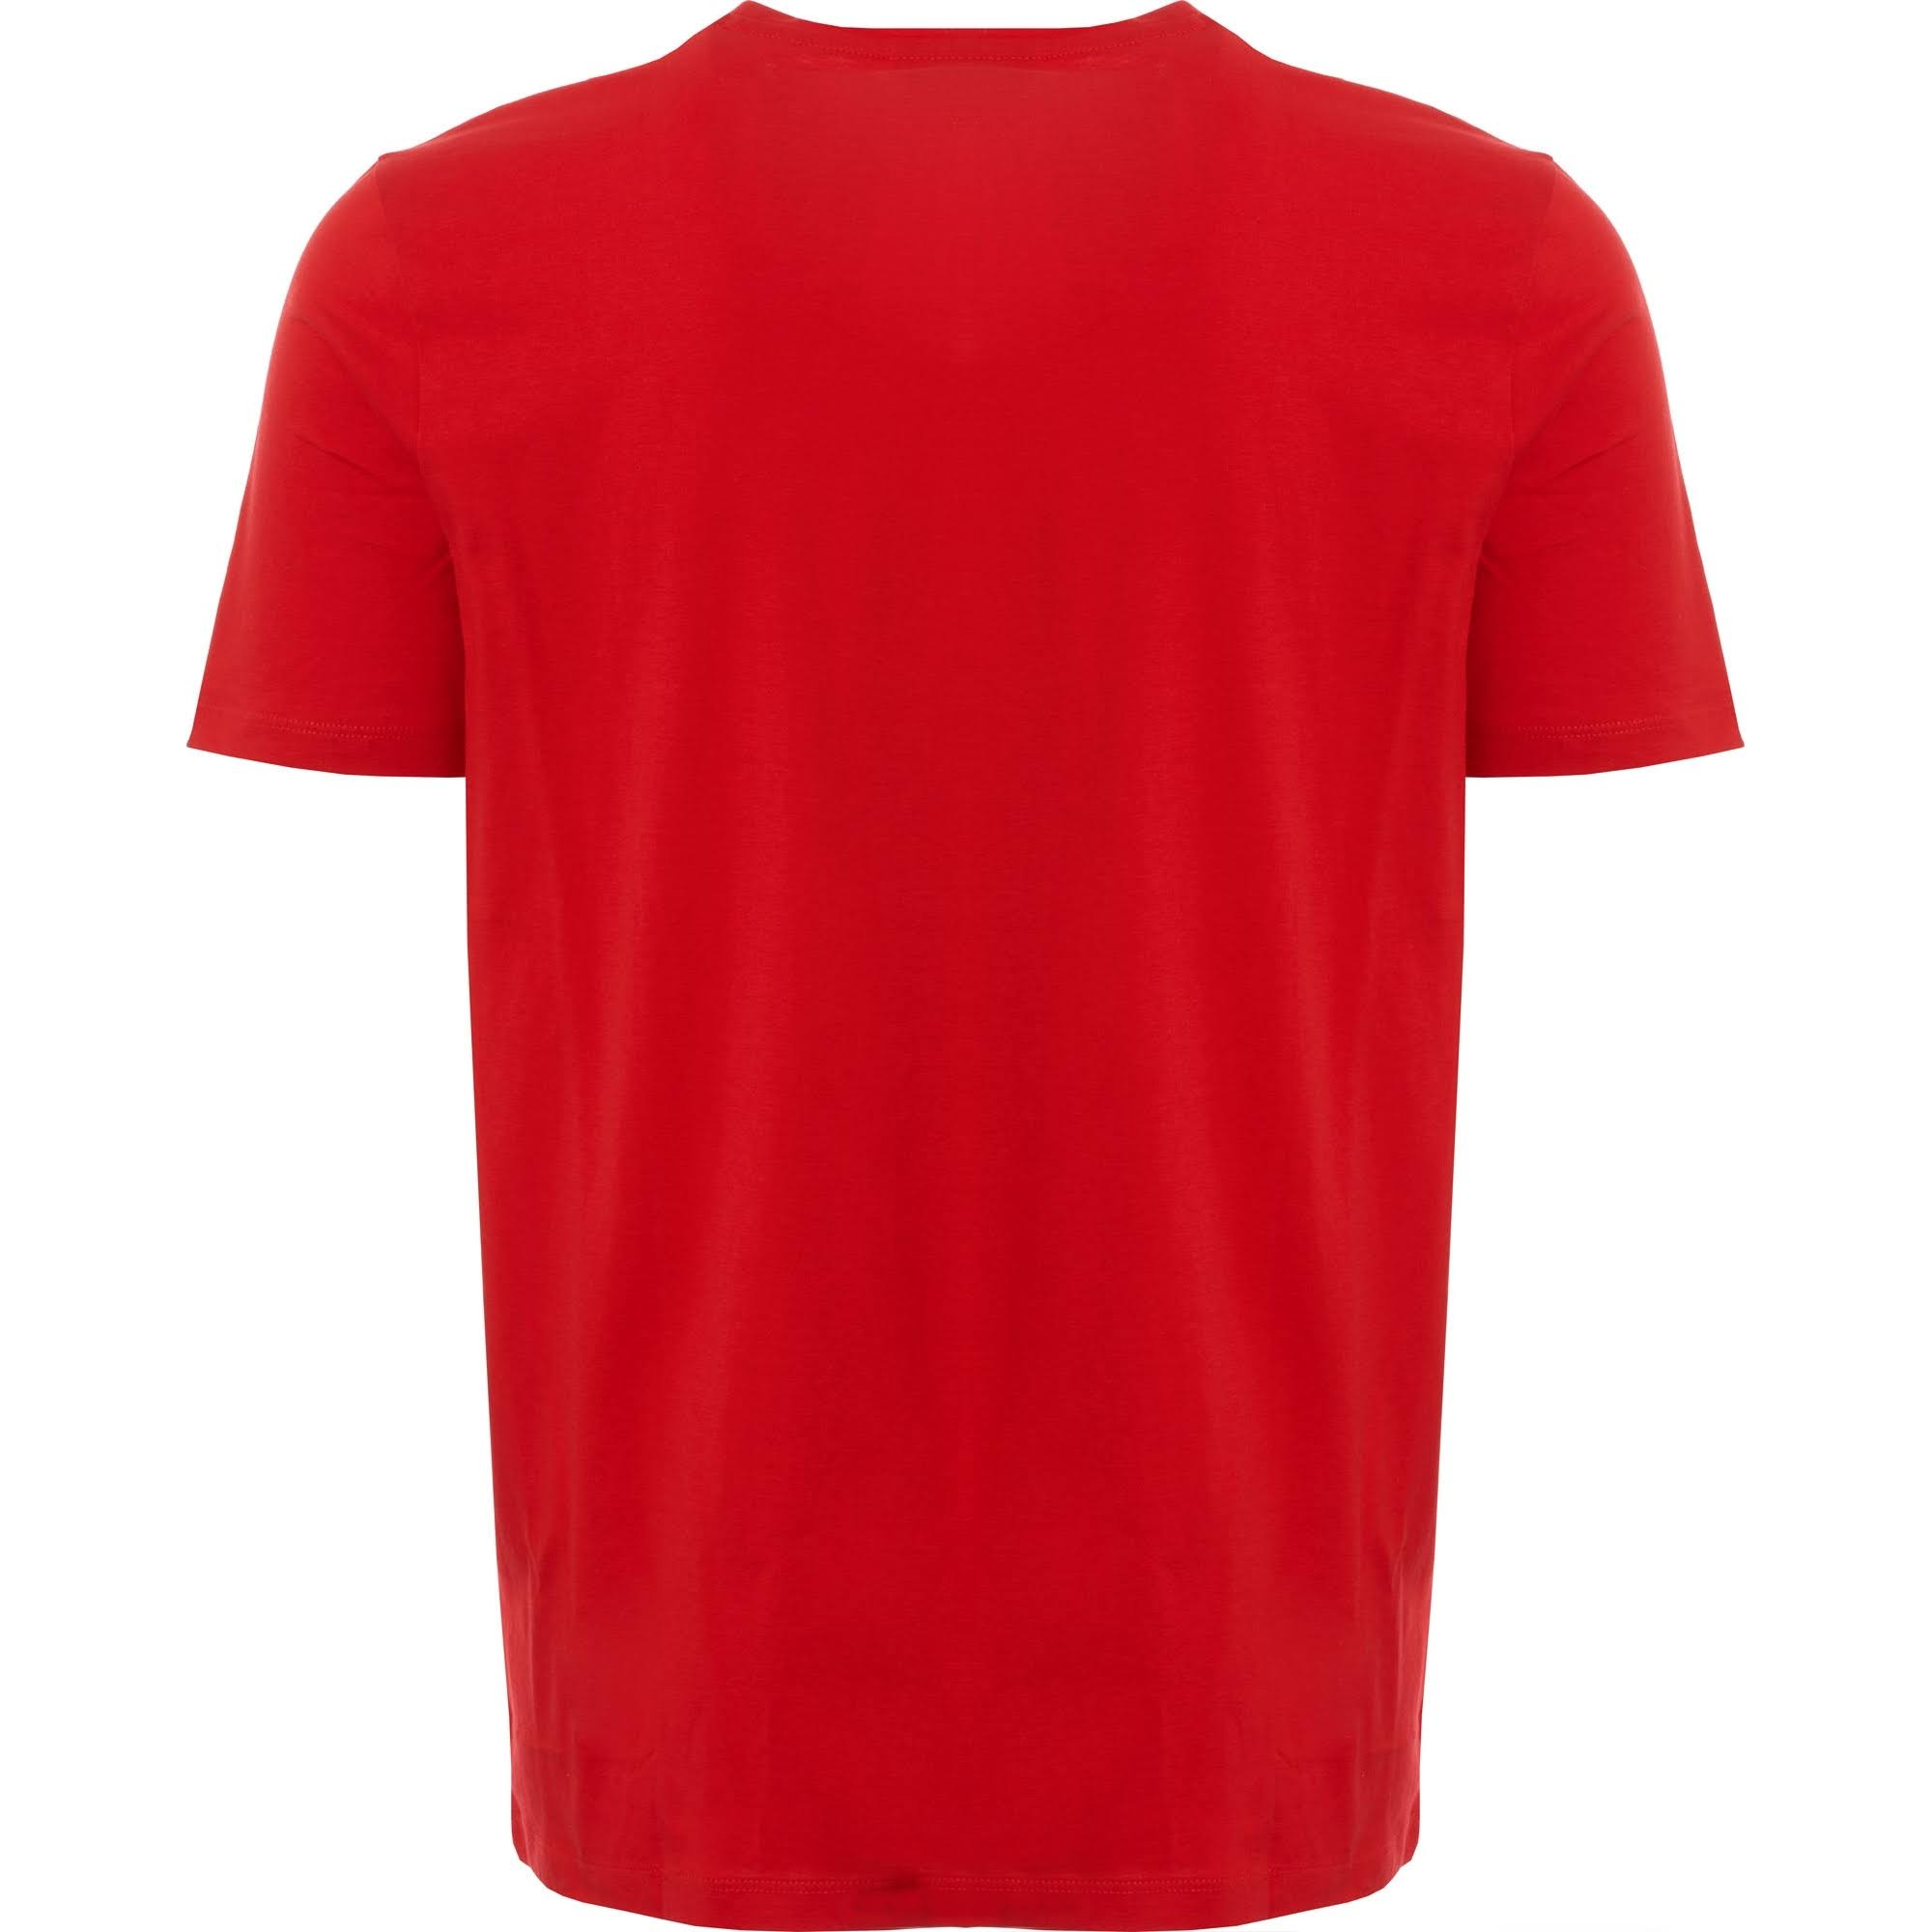 Camiseta u1 Tamaño Color Dolive Rojo Rojo Brillante Hugo 50396249 rRwfq1rE